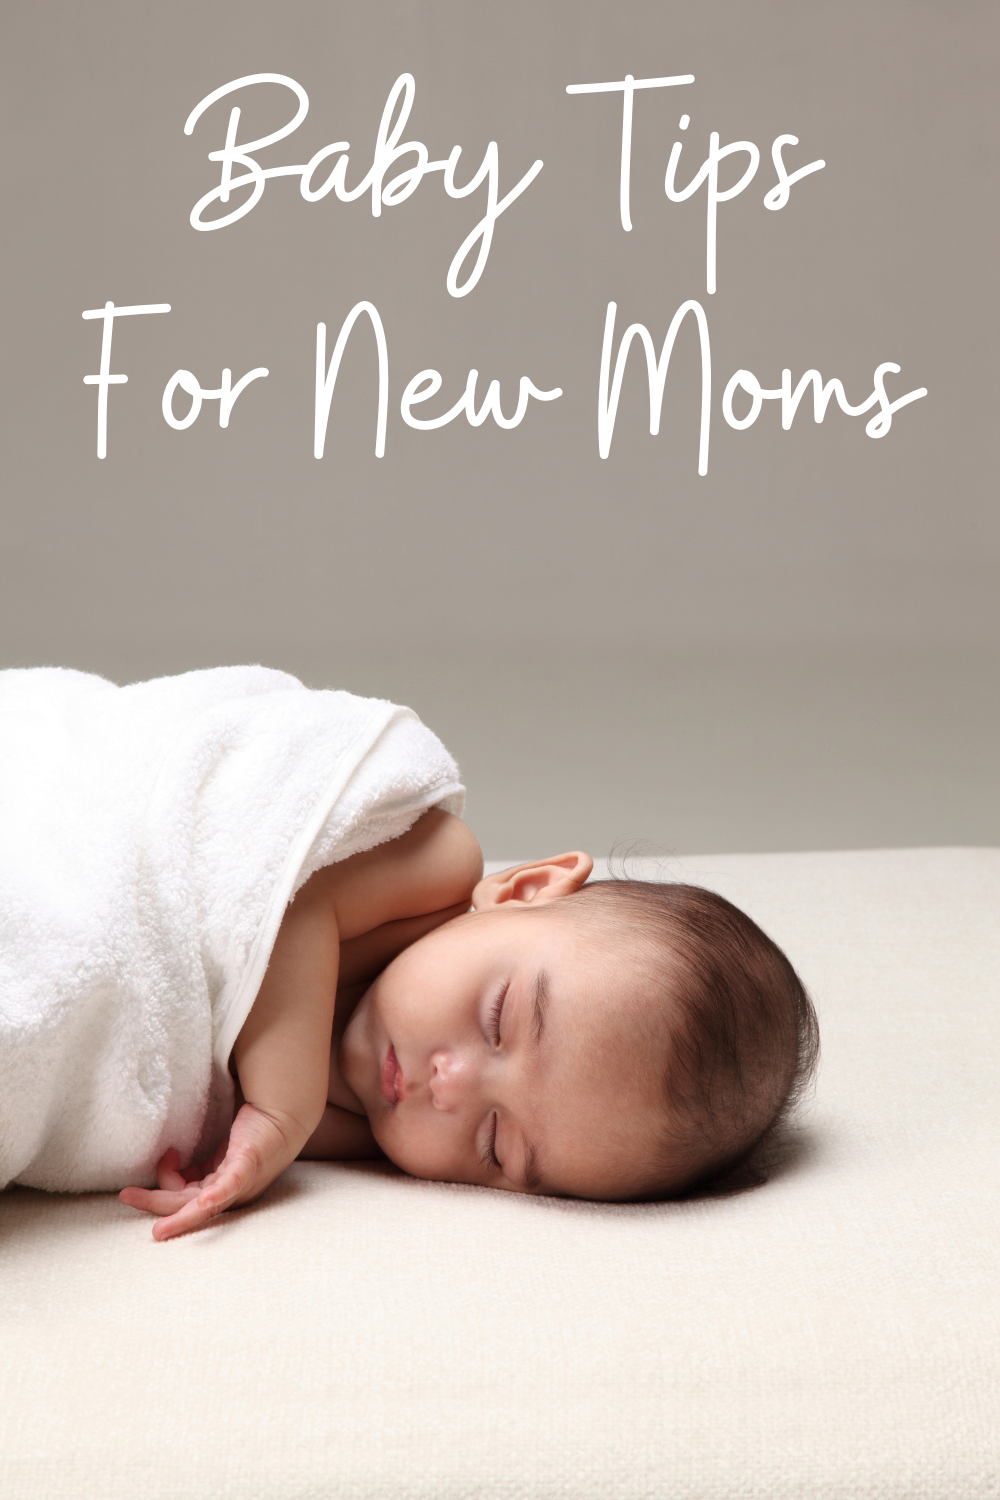 sleeping baby with text on image Baby tips for New Moms